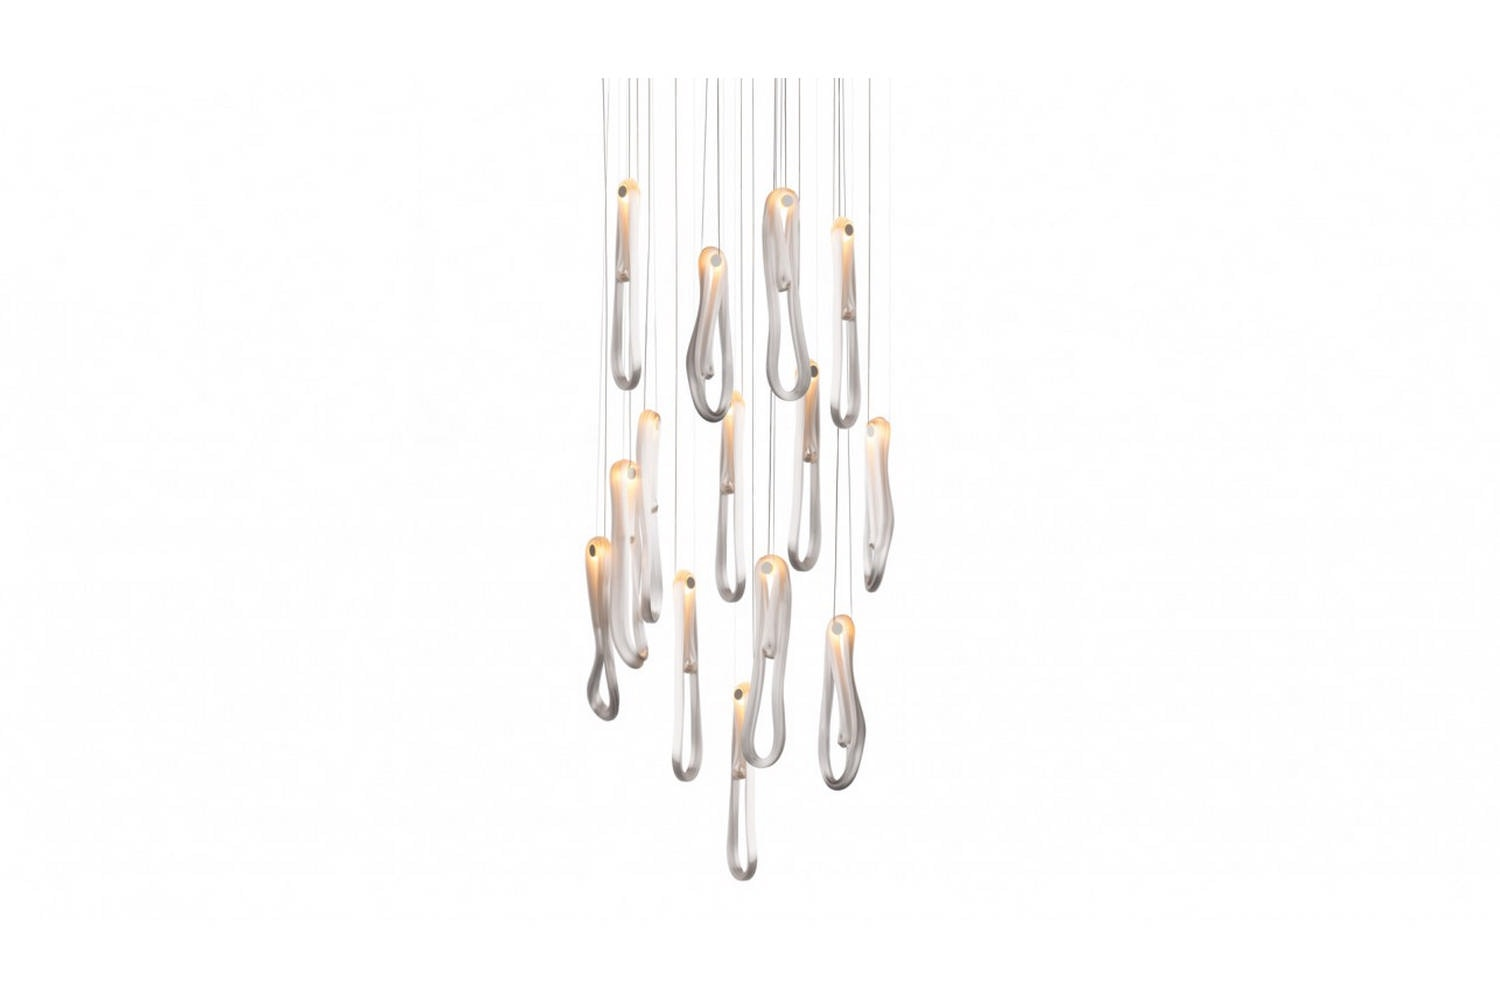 87.14 Suspension Lamp by Omer Arbel for Bocci